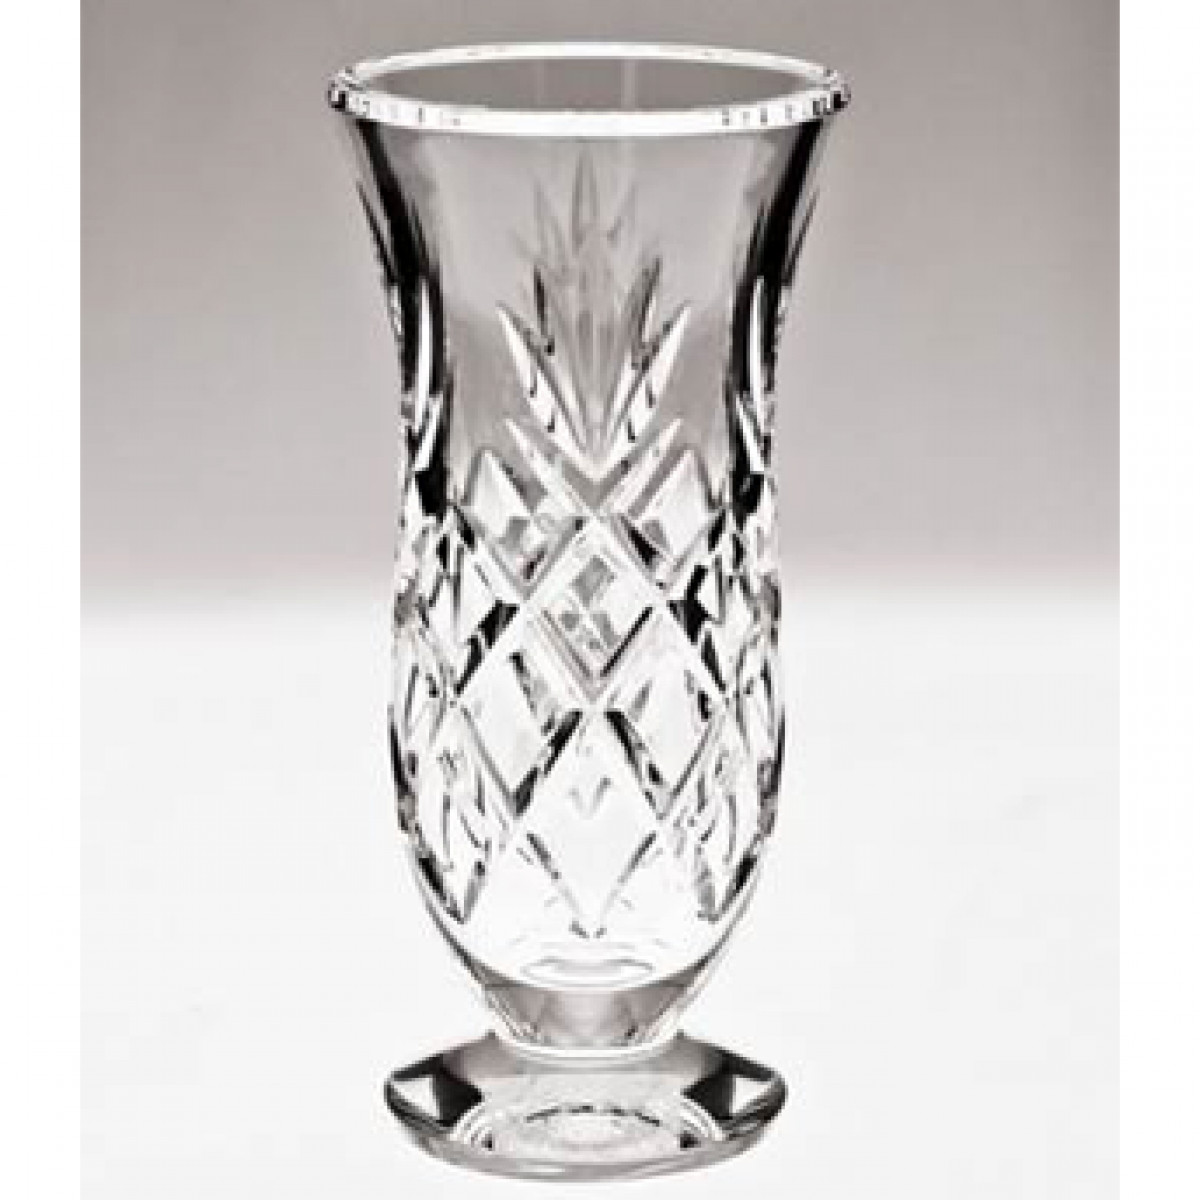 Retired Waterford Crystal Vase Patterns Of Woodmont 8in Vase Discontinued Waterford Us with Woodmont 8in Vase Discontinued